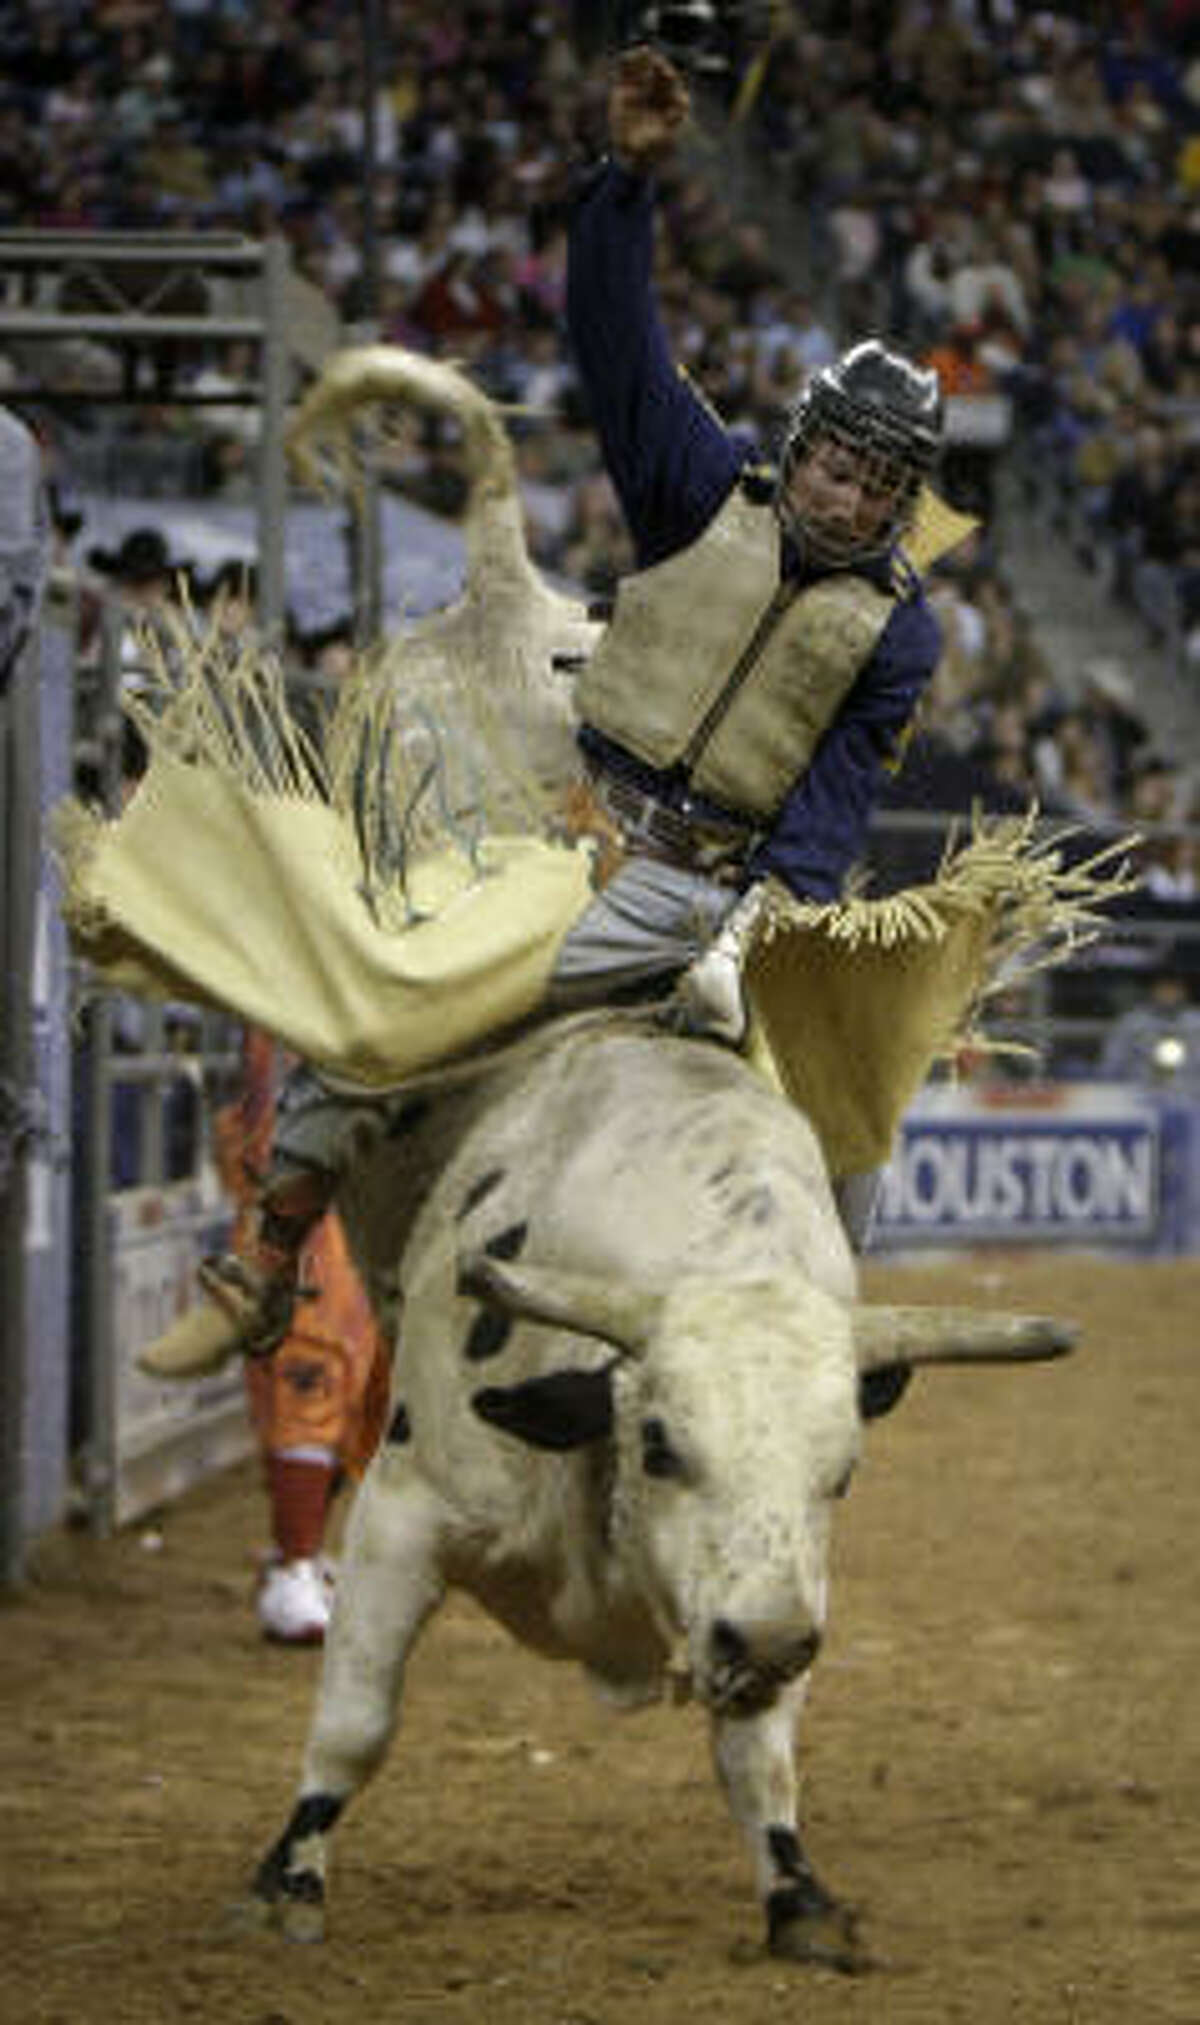 Stormy Wing of Dalhart rides Mr. Bojangles during Saturday's bull riding competition at RodeoHouston.